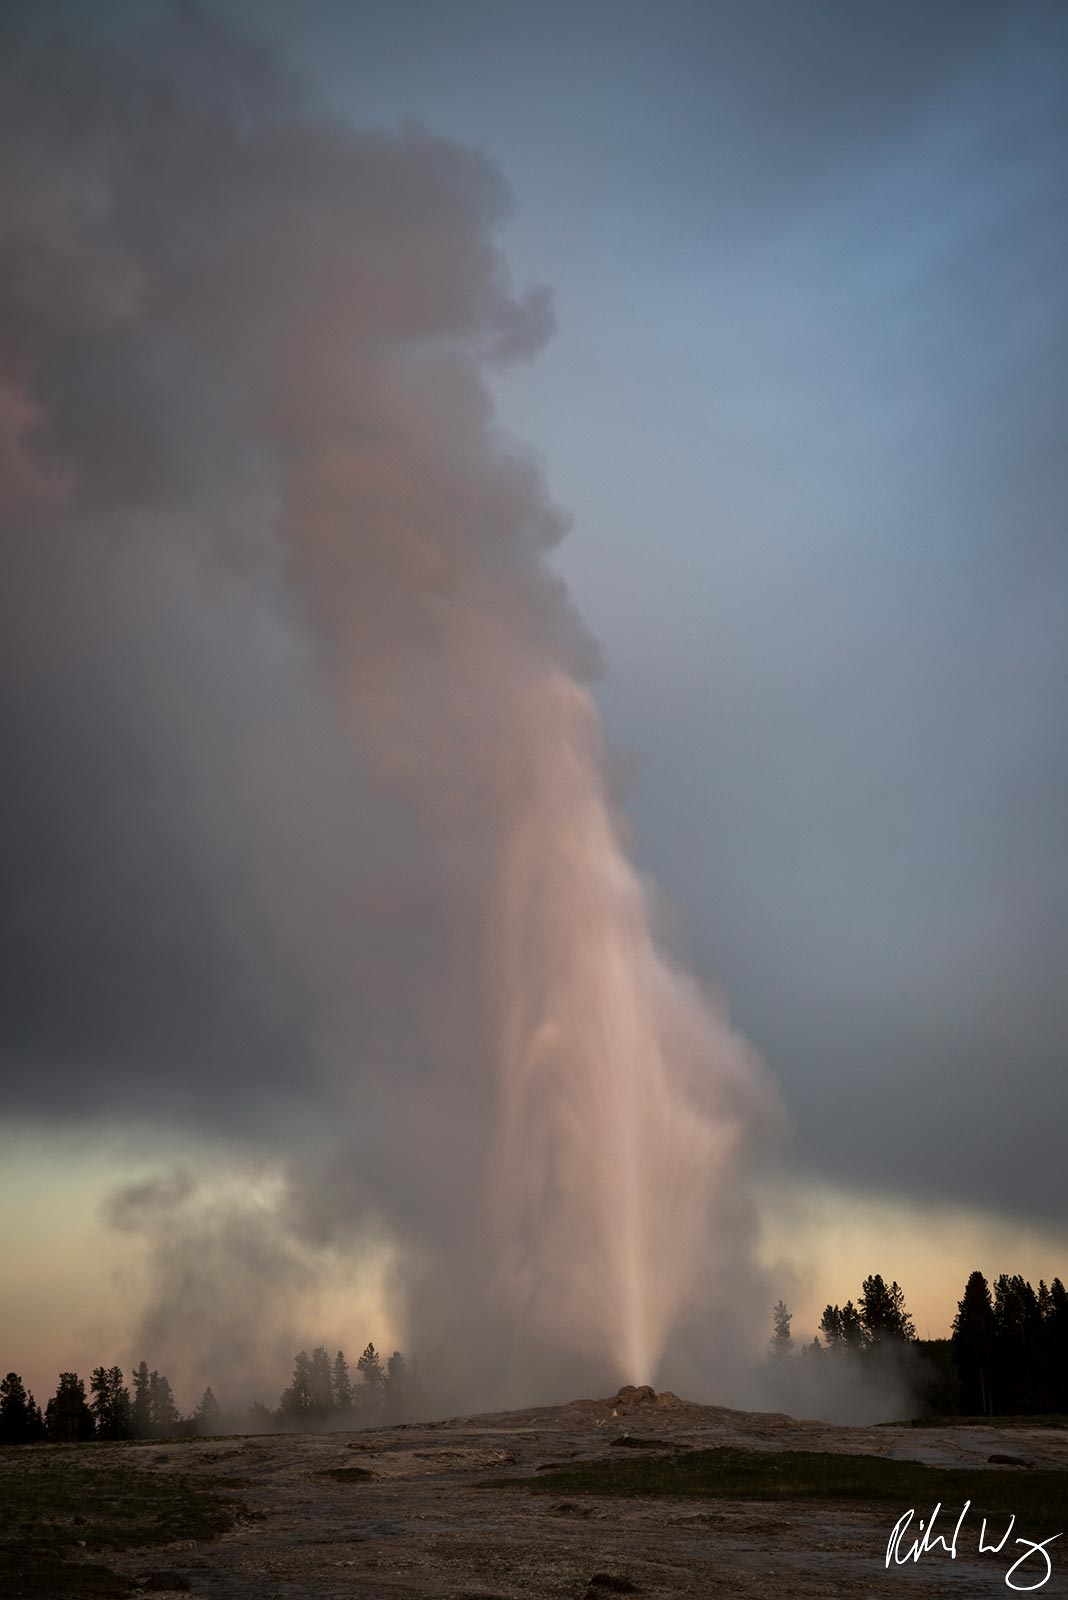 old faithful, yellowstone national park, wyoming, geysers, photo, photo